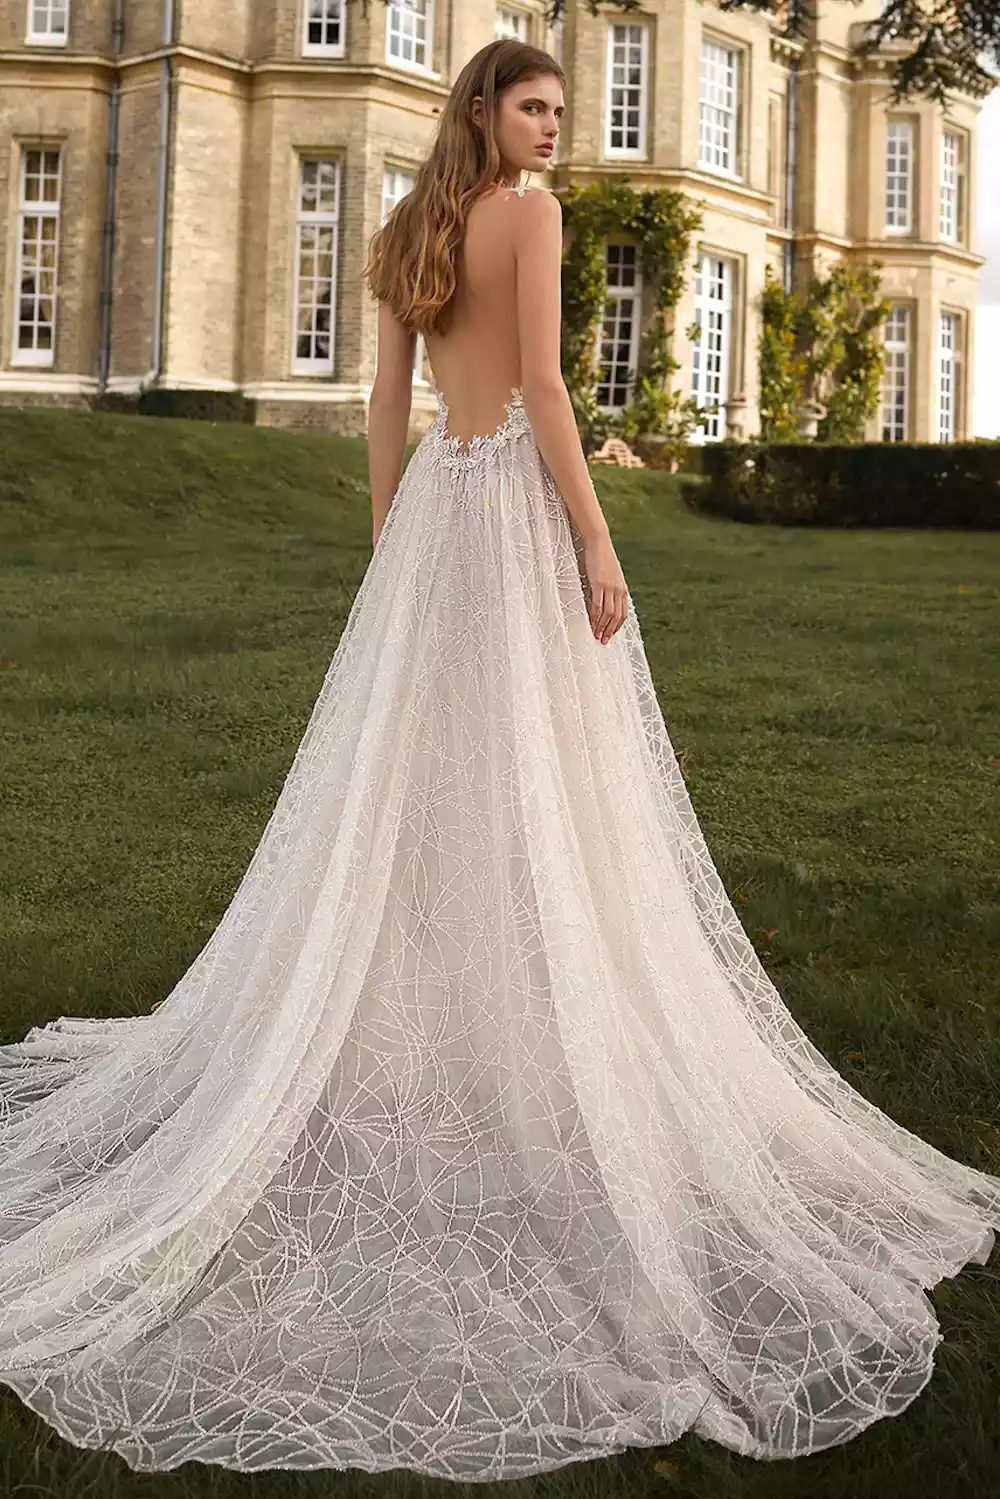 24 Alluring Backless Wedding Dresses For The Bold Inclined In 2021 Backless Wedding Dress Wedding Dresses Backless Wedding [ 1499 x 1000 Pixel ]